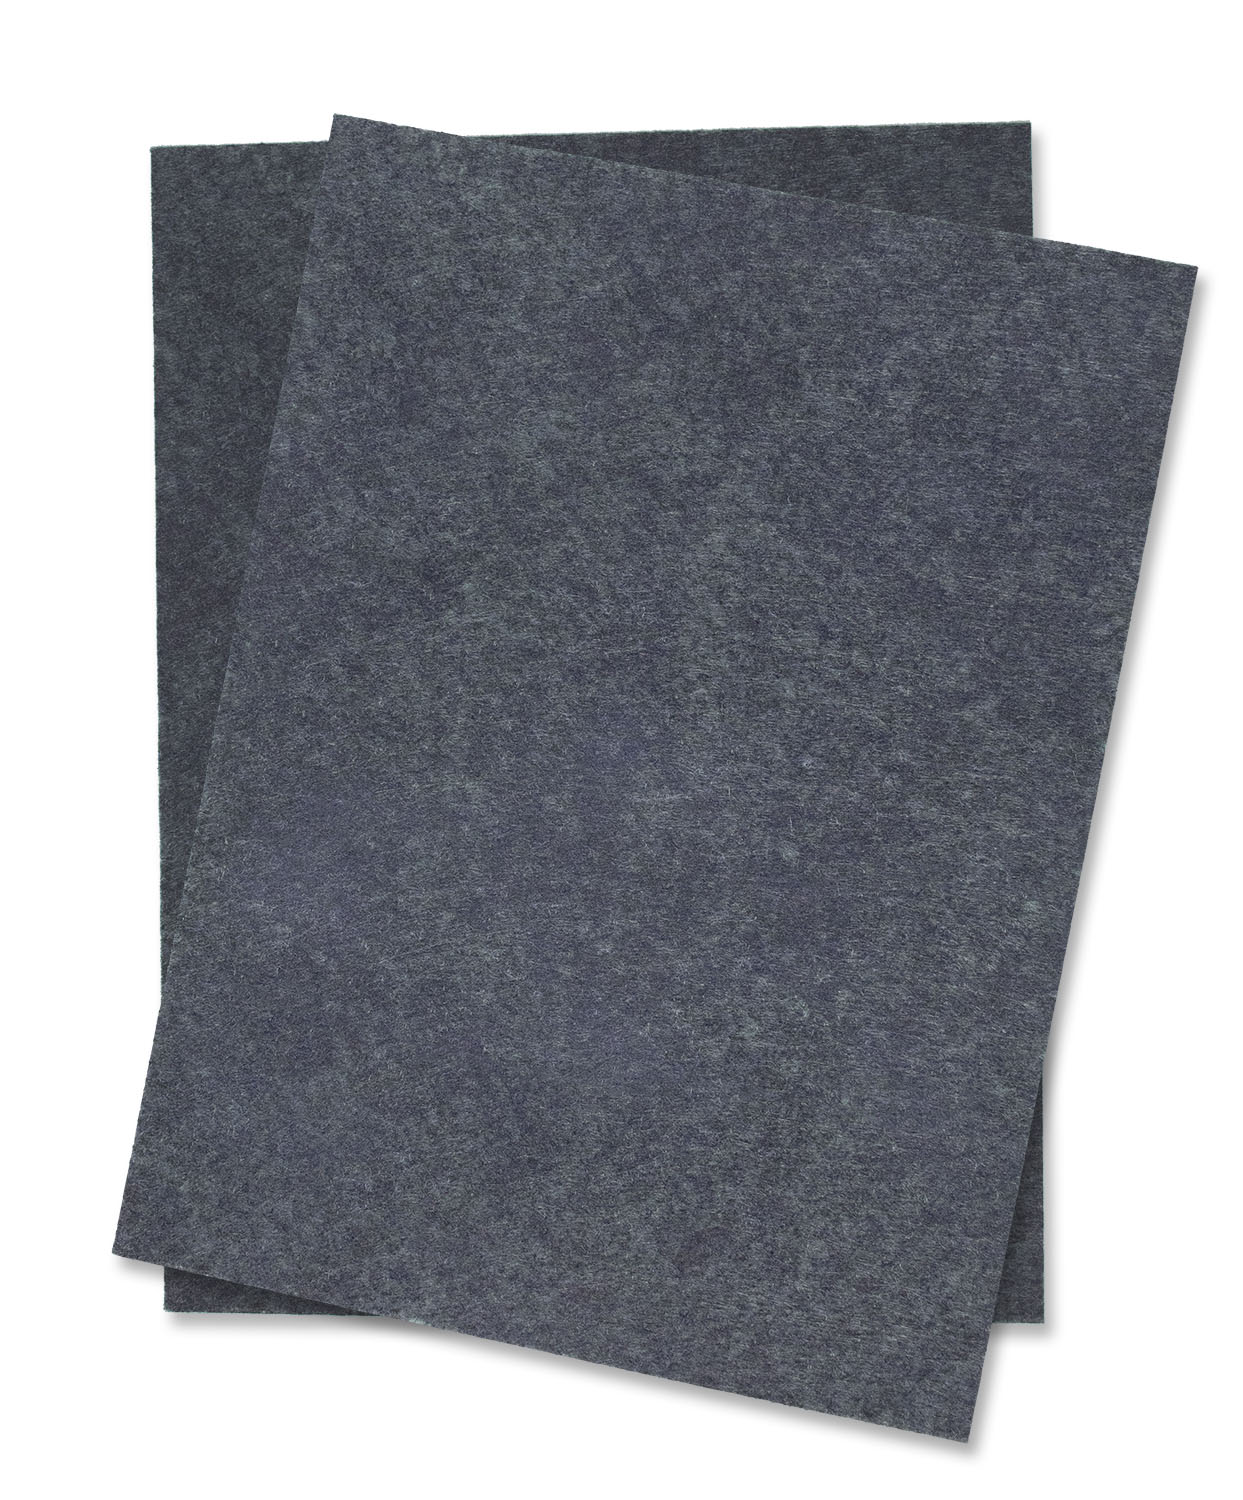 "Bead Backing Economy Foundation 8"" x 11"" Grey, Dark (2)"